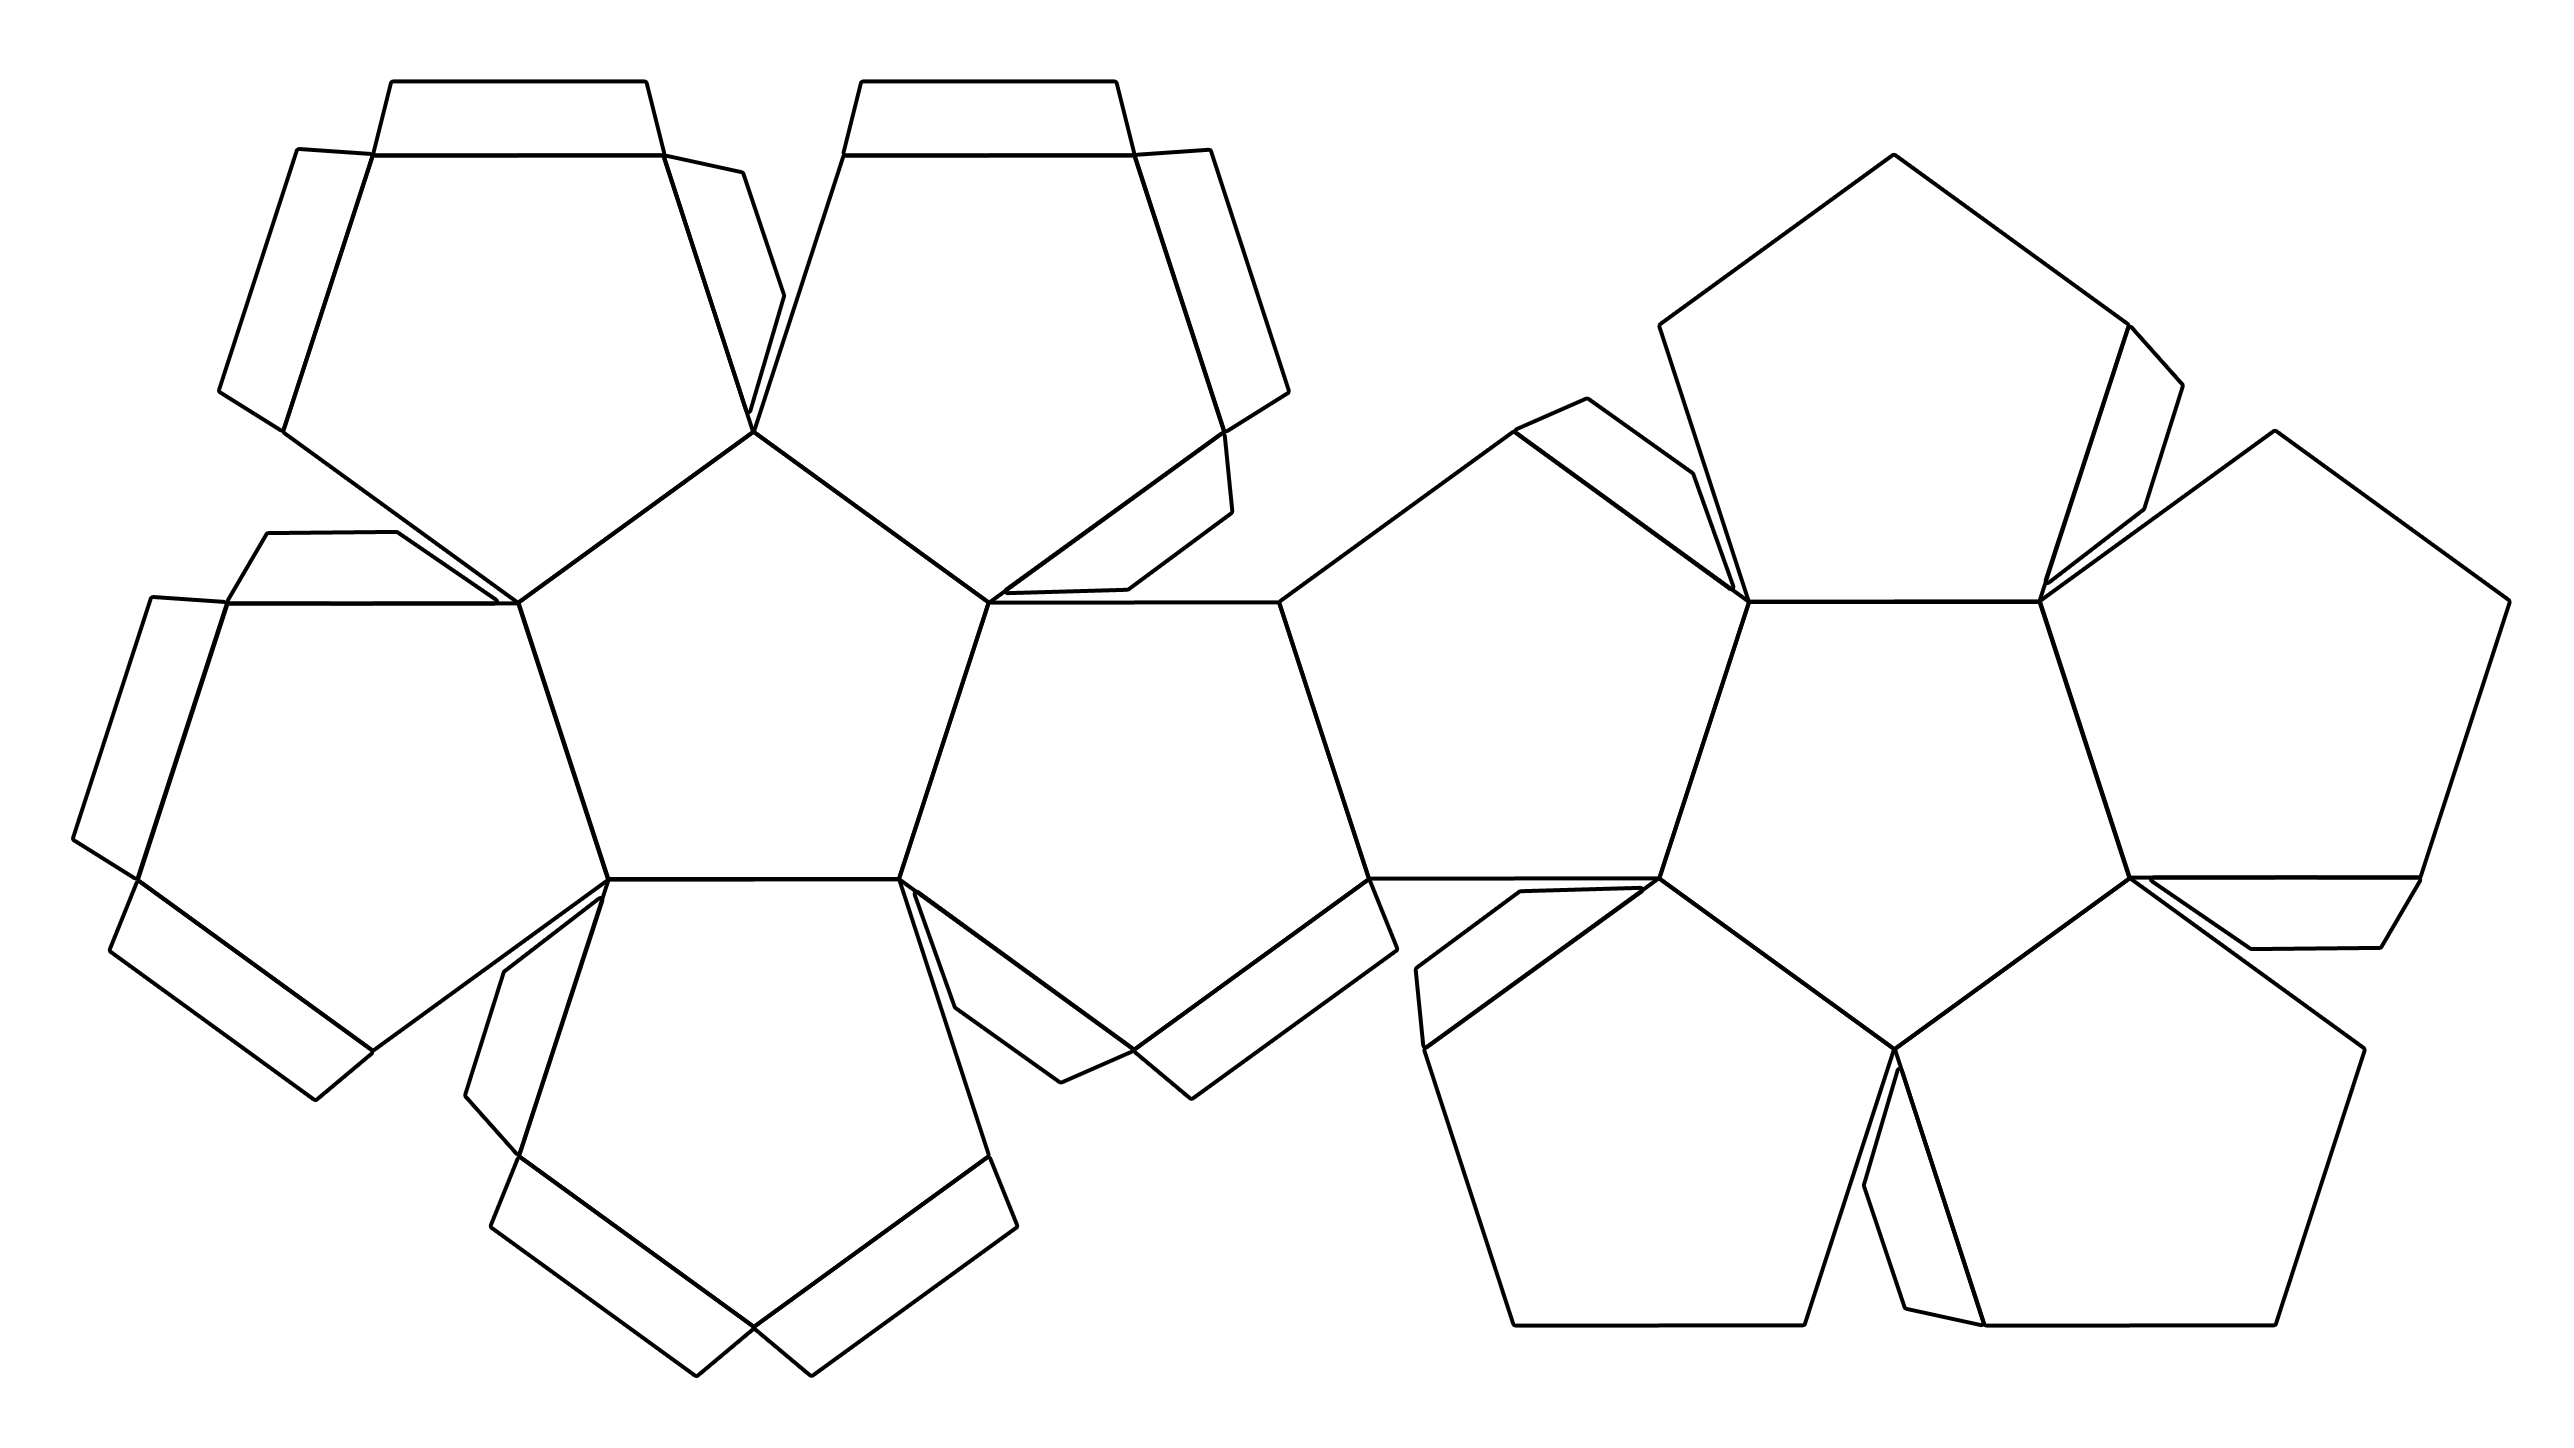 File:Foldable dodecahedron (blank).jpg